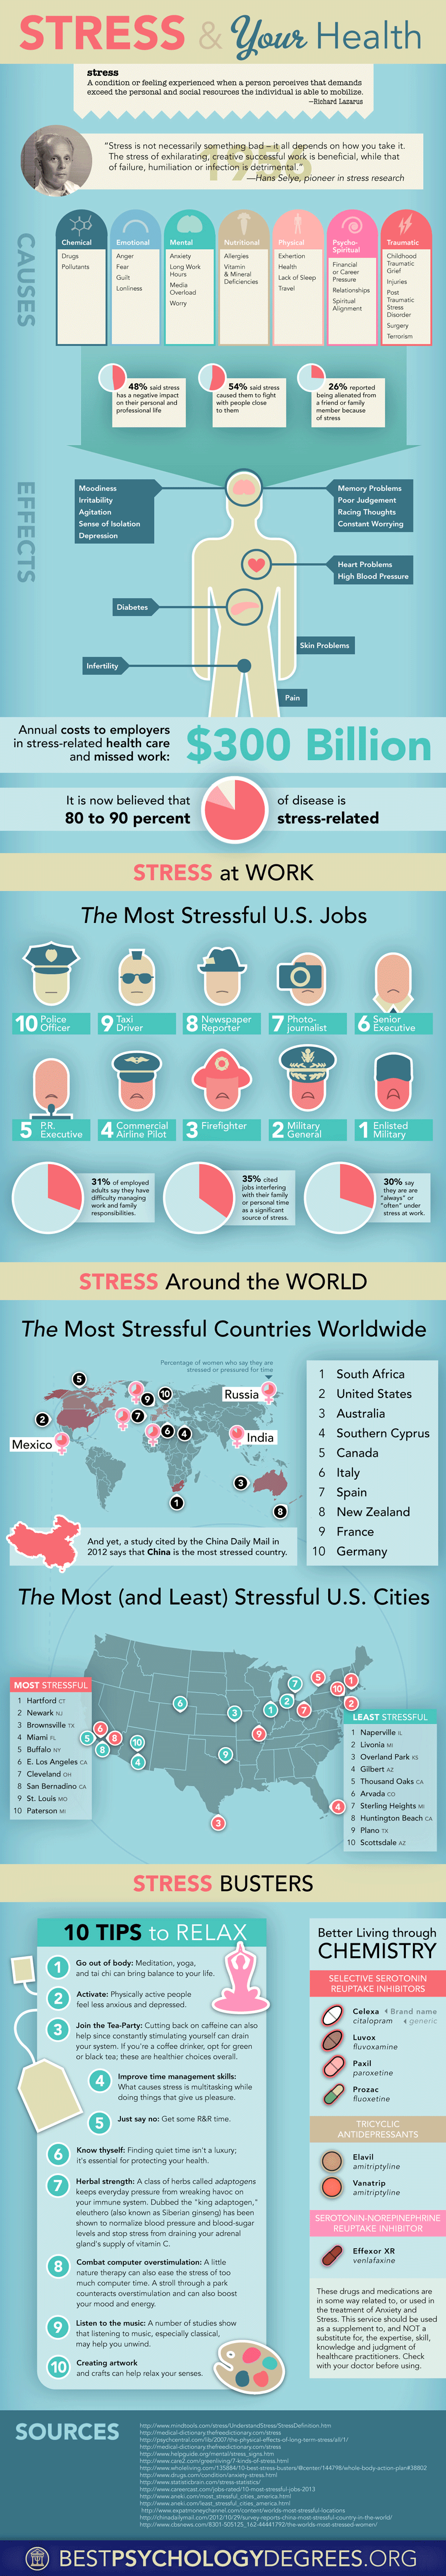 Stress Vs Good Health - Infographic